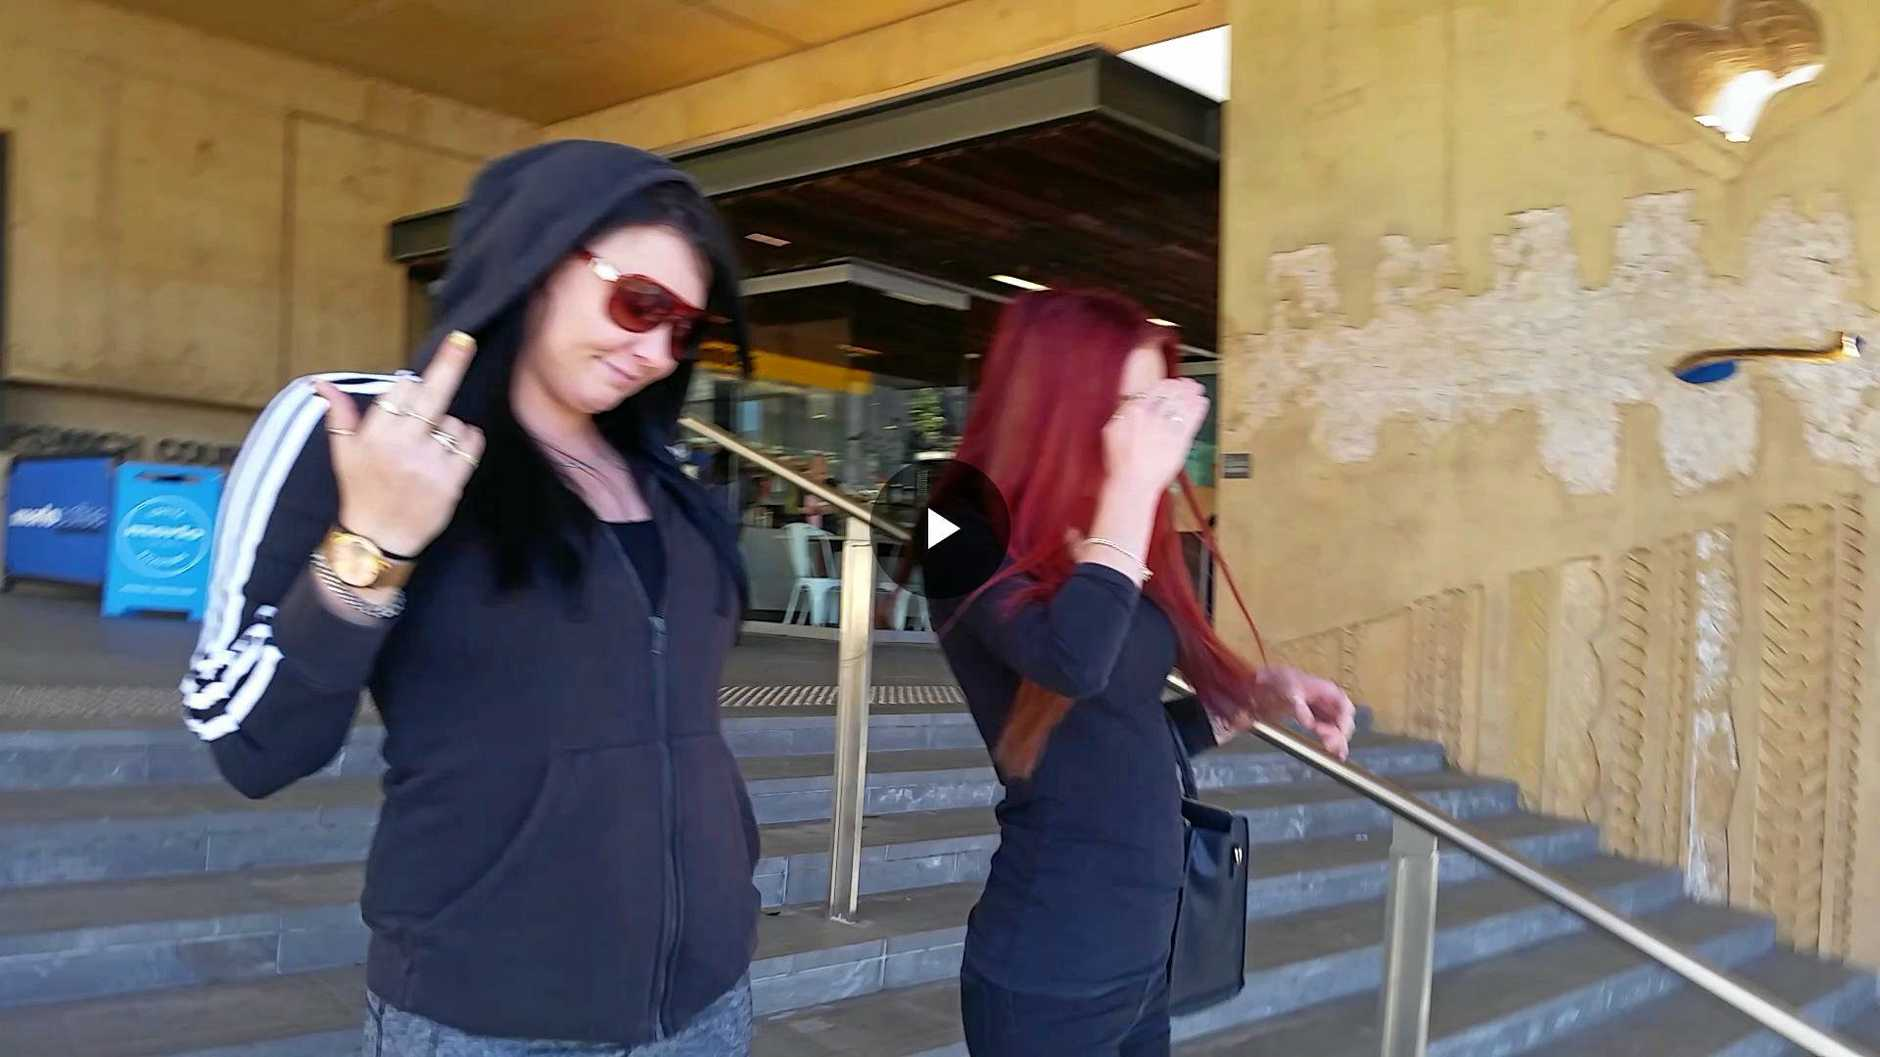 COPS ASSAULT: Heather Drysdale pleaded guilty to assaulting three police officers at a hotel.